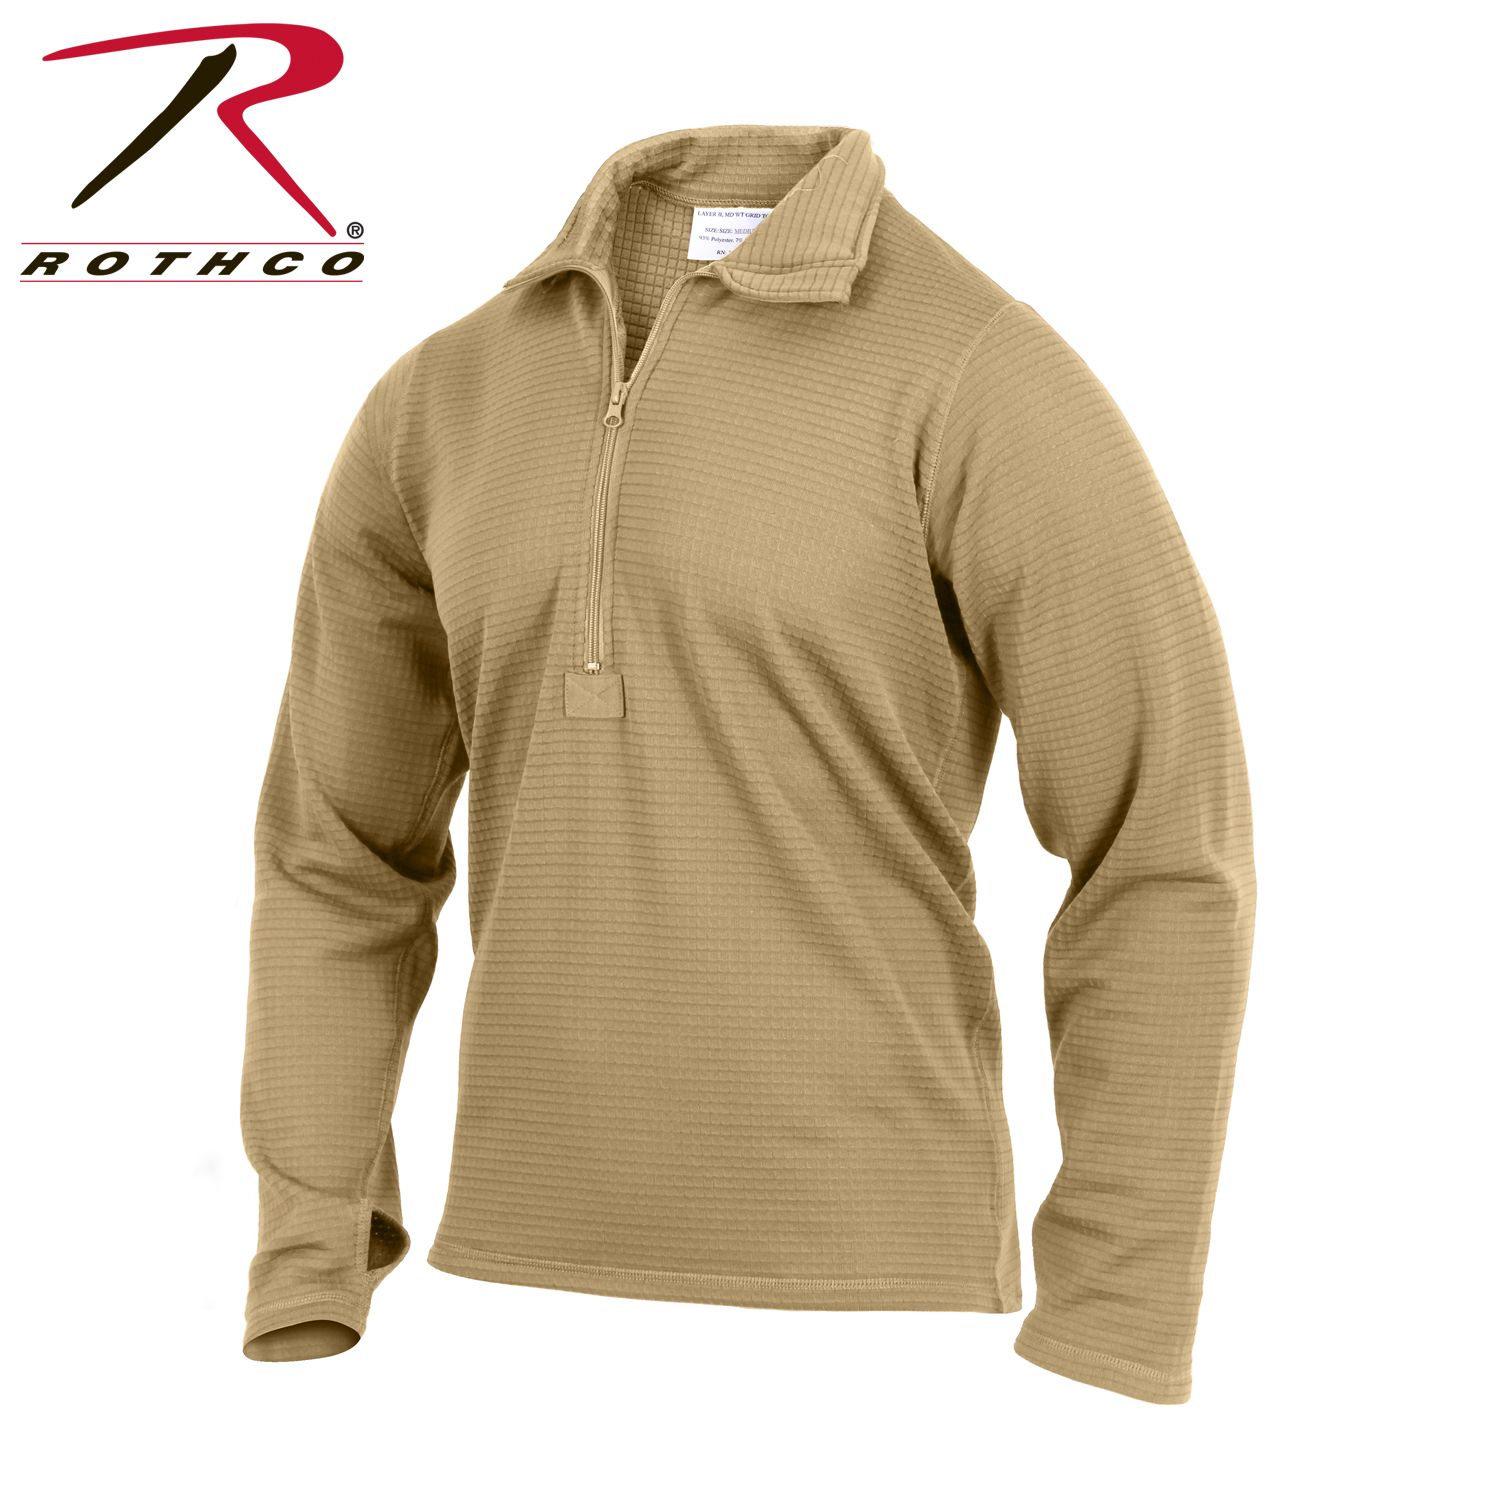 Rothco Gen III Level II Underwear Top is AR 670-1 Compliant Thermal Long  Sleeve d10dfc912f8